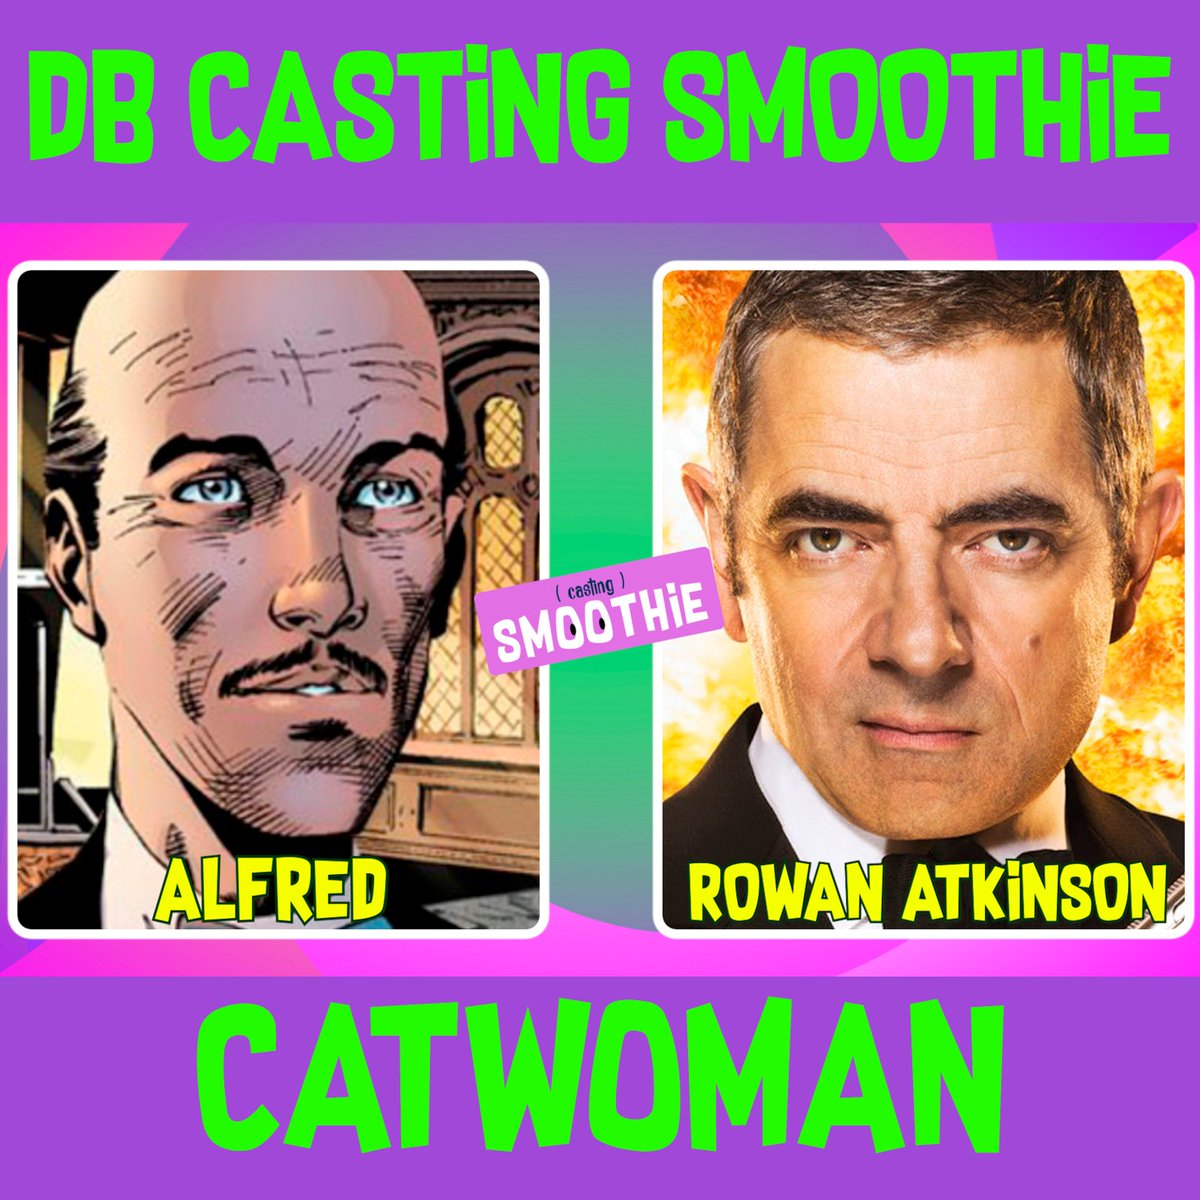 Rowan Atkinson as Alfred Pennyworth? Mr Bean as Alfred?  Do you think we could be soft in the head?    Please watch the Catwoman DB Casting Smoothie and tell us about it!  https:// youtu.be/hHffm_Dgmio  &nbsp;   #rowanatkinson #alfredpennyworth #mrbean #catwoman #castingsmoothie #Batman #dc<br>http://pic.twitter.com/9kyFEzCldC